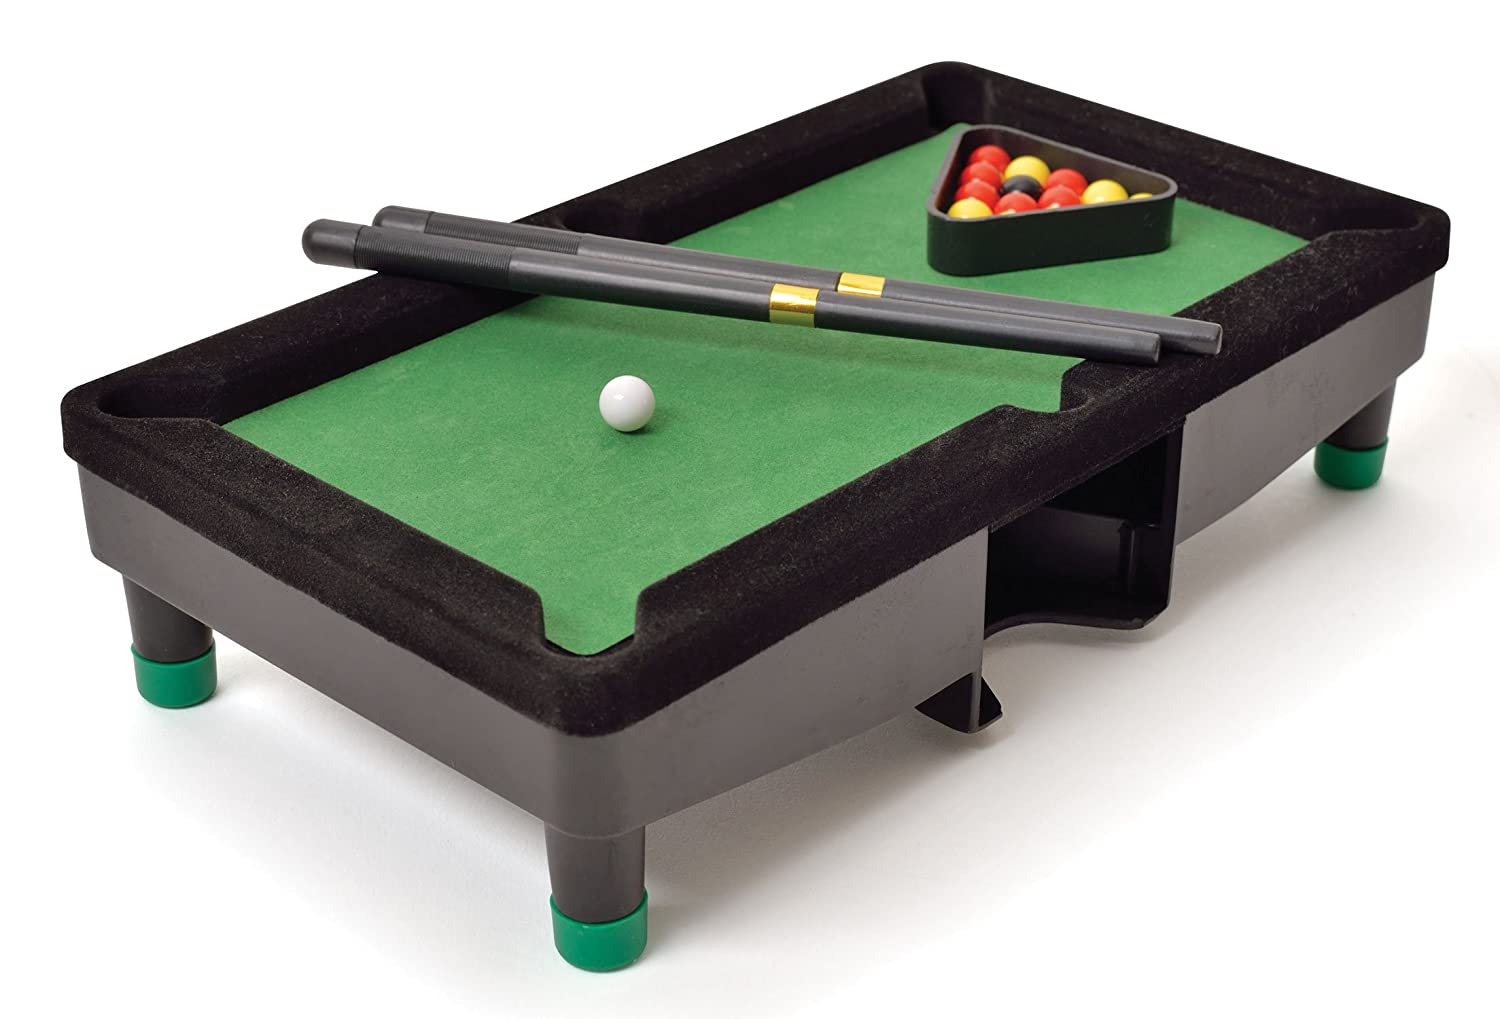 Remarkable Perfect Life Ideas Desktop Miniature Pool Table Set With Mini Pool Balls Cue Sticks Accessories Tabletop Toy Gaming For Men Women Play Billiards Home Interior And Landscaping Spoatsignezvosmurscom